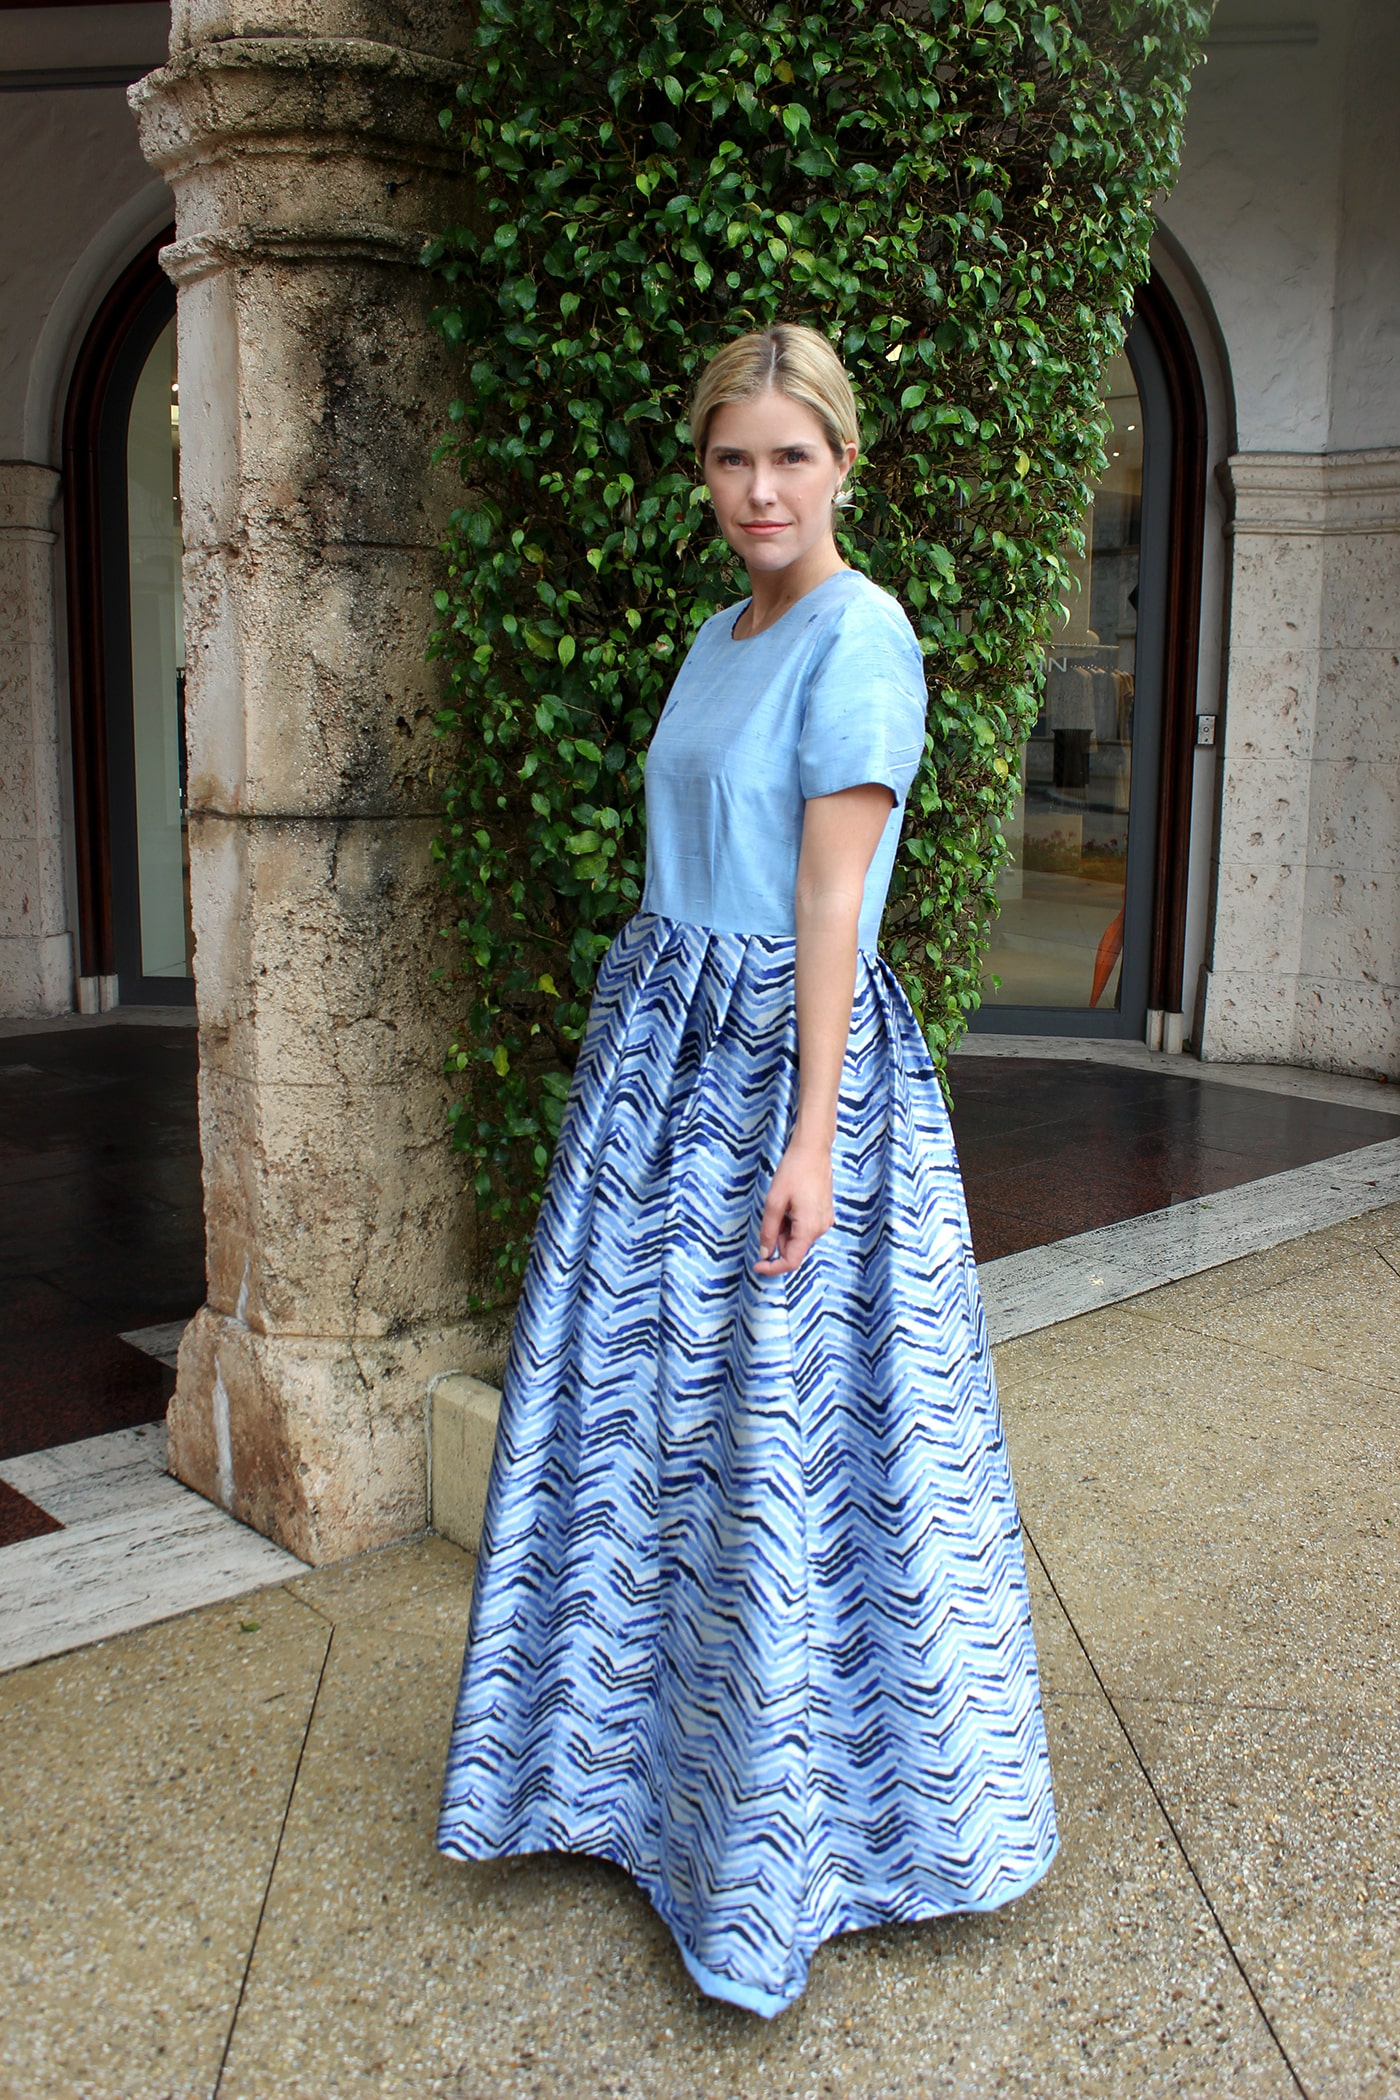 The Fulton Dress is simultaneously cute and elegant. Its simple sky-blue duponi silk top lends center-stage to the full, floor-length pleated blue-wave Ratti silk skirt.